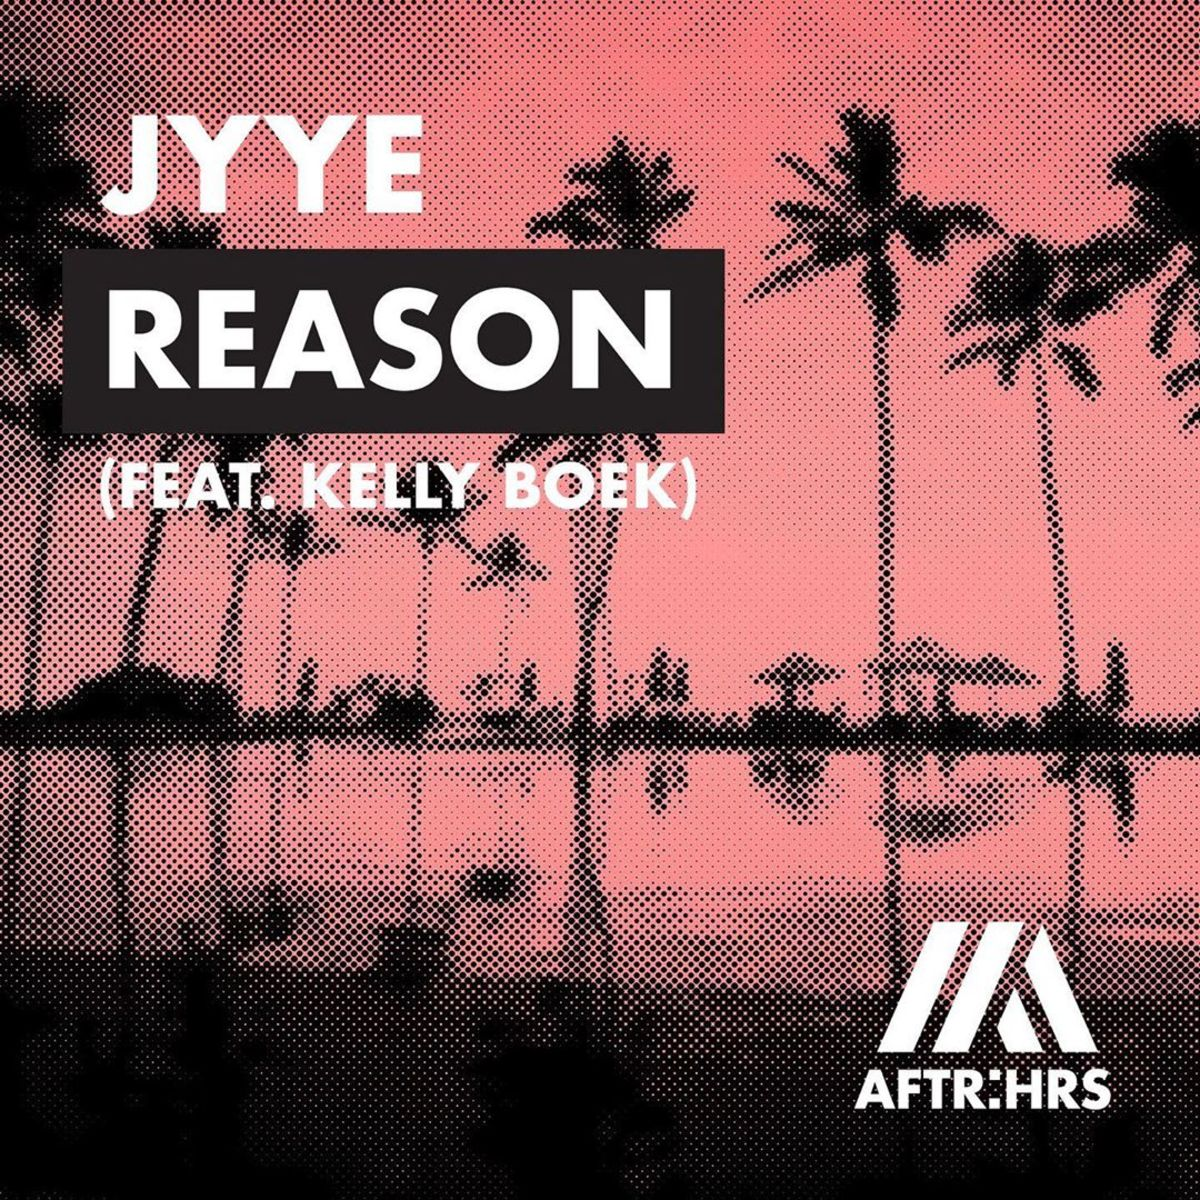 Jyye - Reason (ALBUM ART)